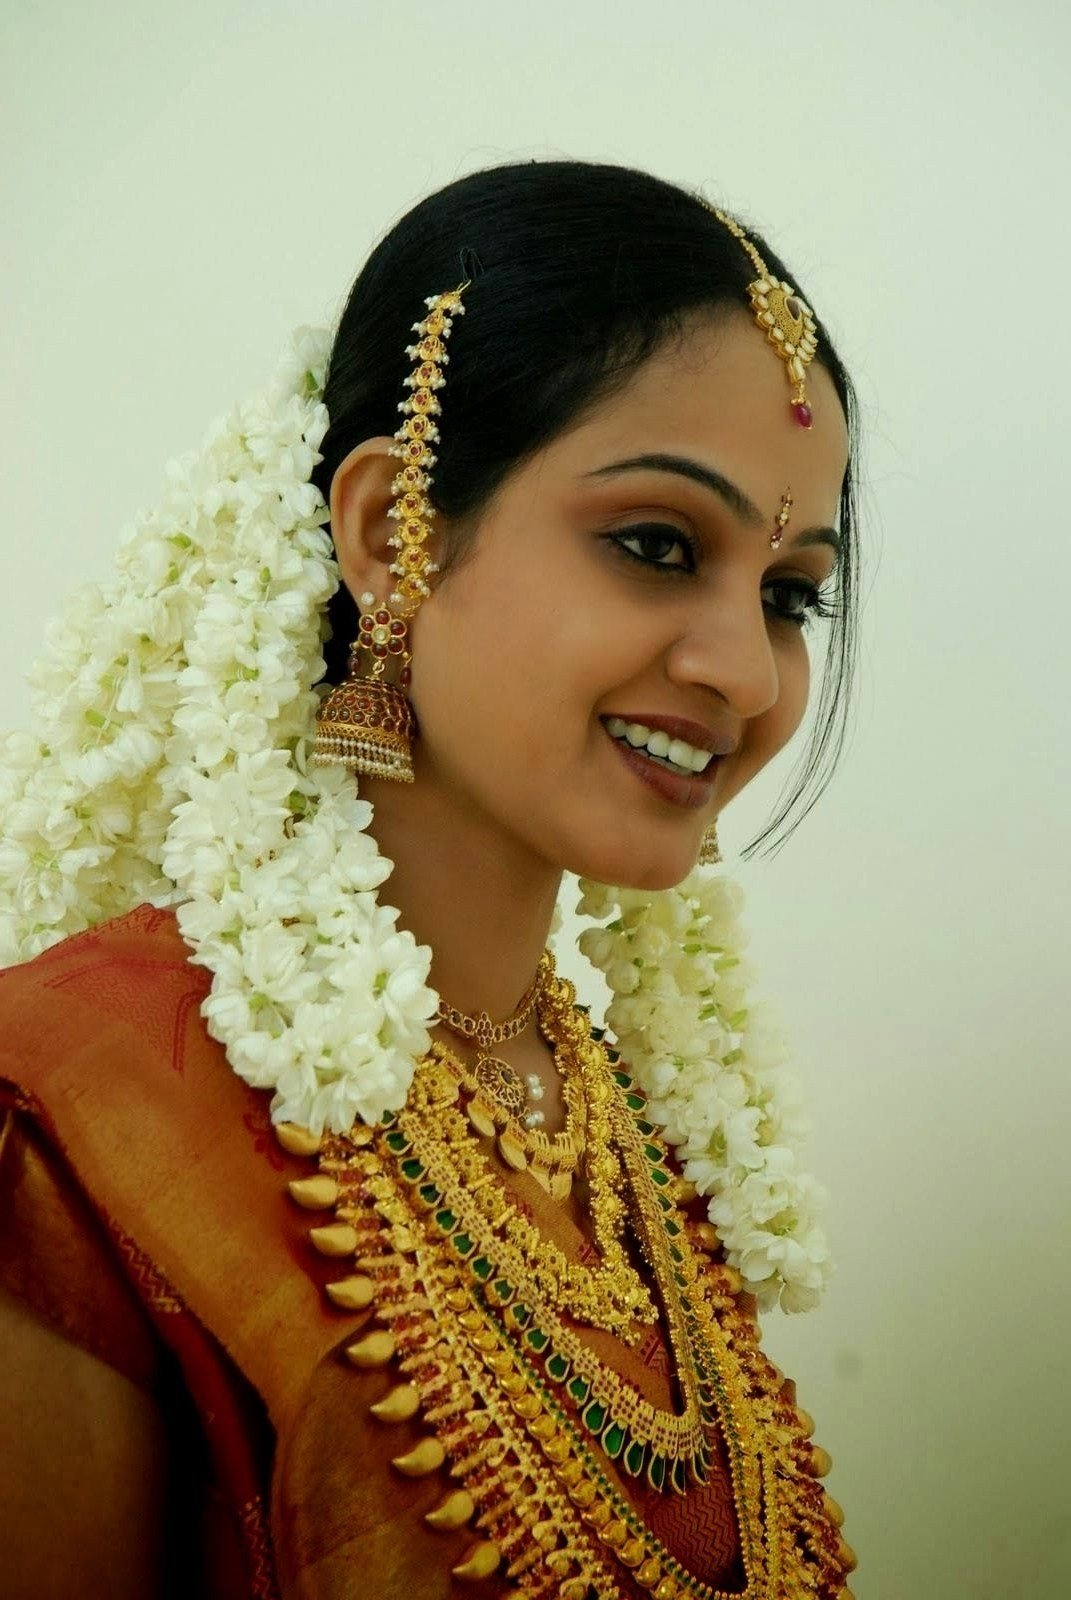 The Best 15 Inspirations Of South Indian Tamil Bridal Wedding Pictures